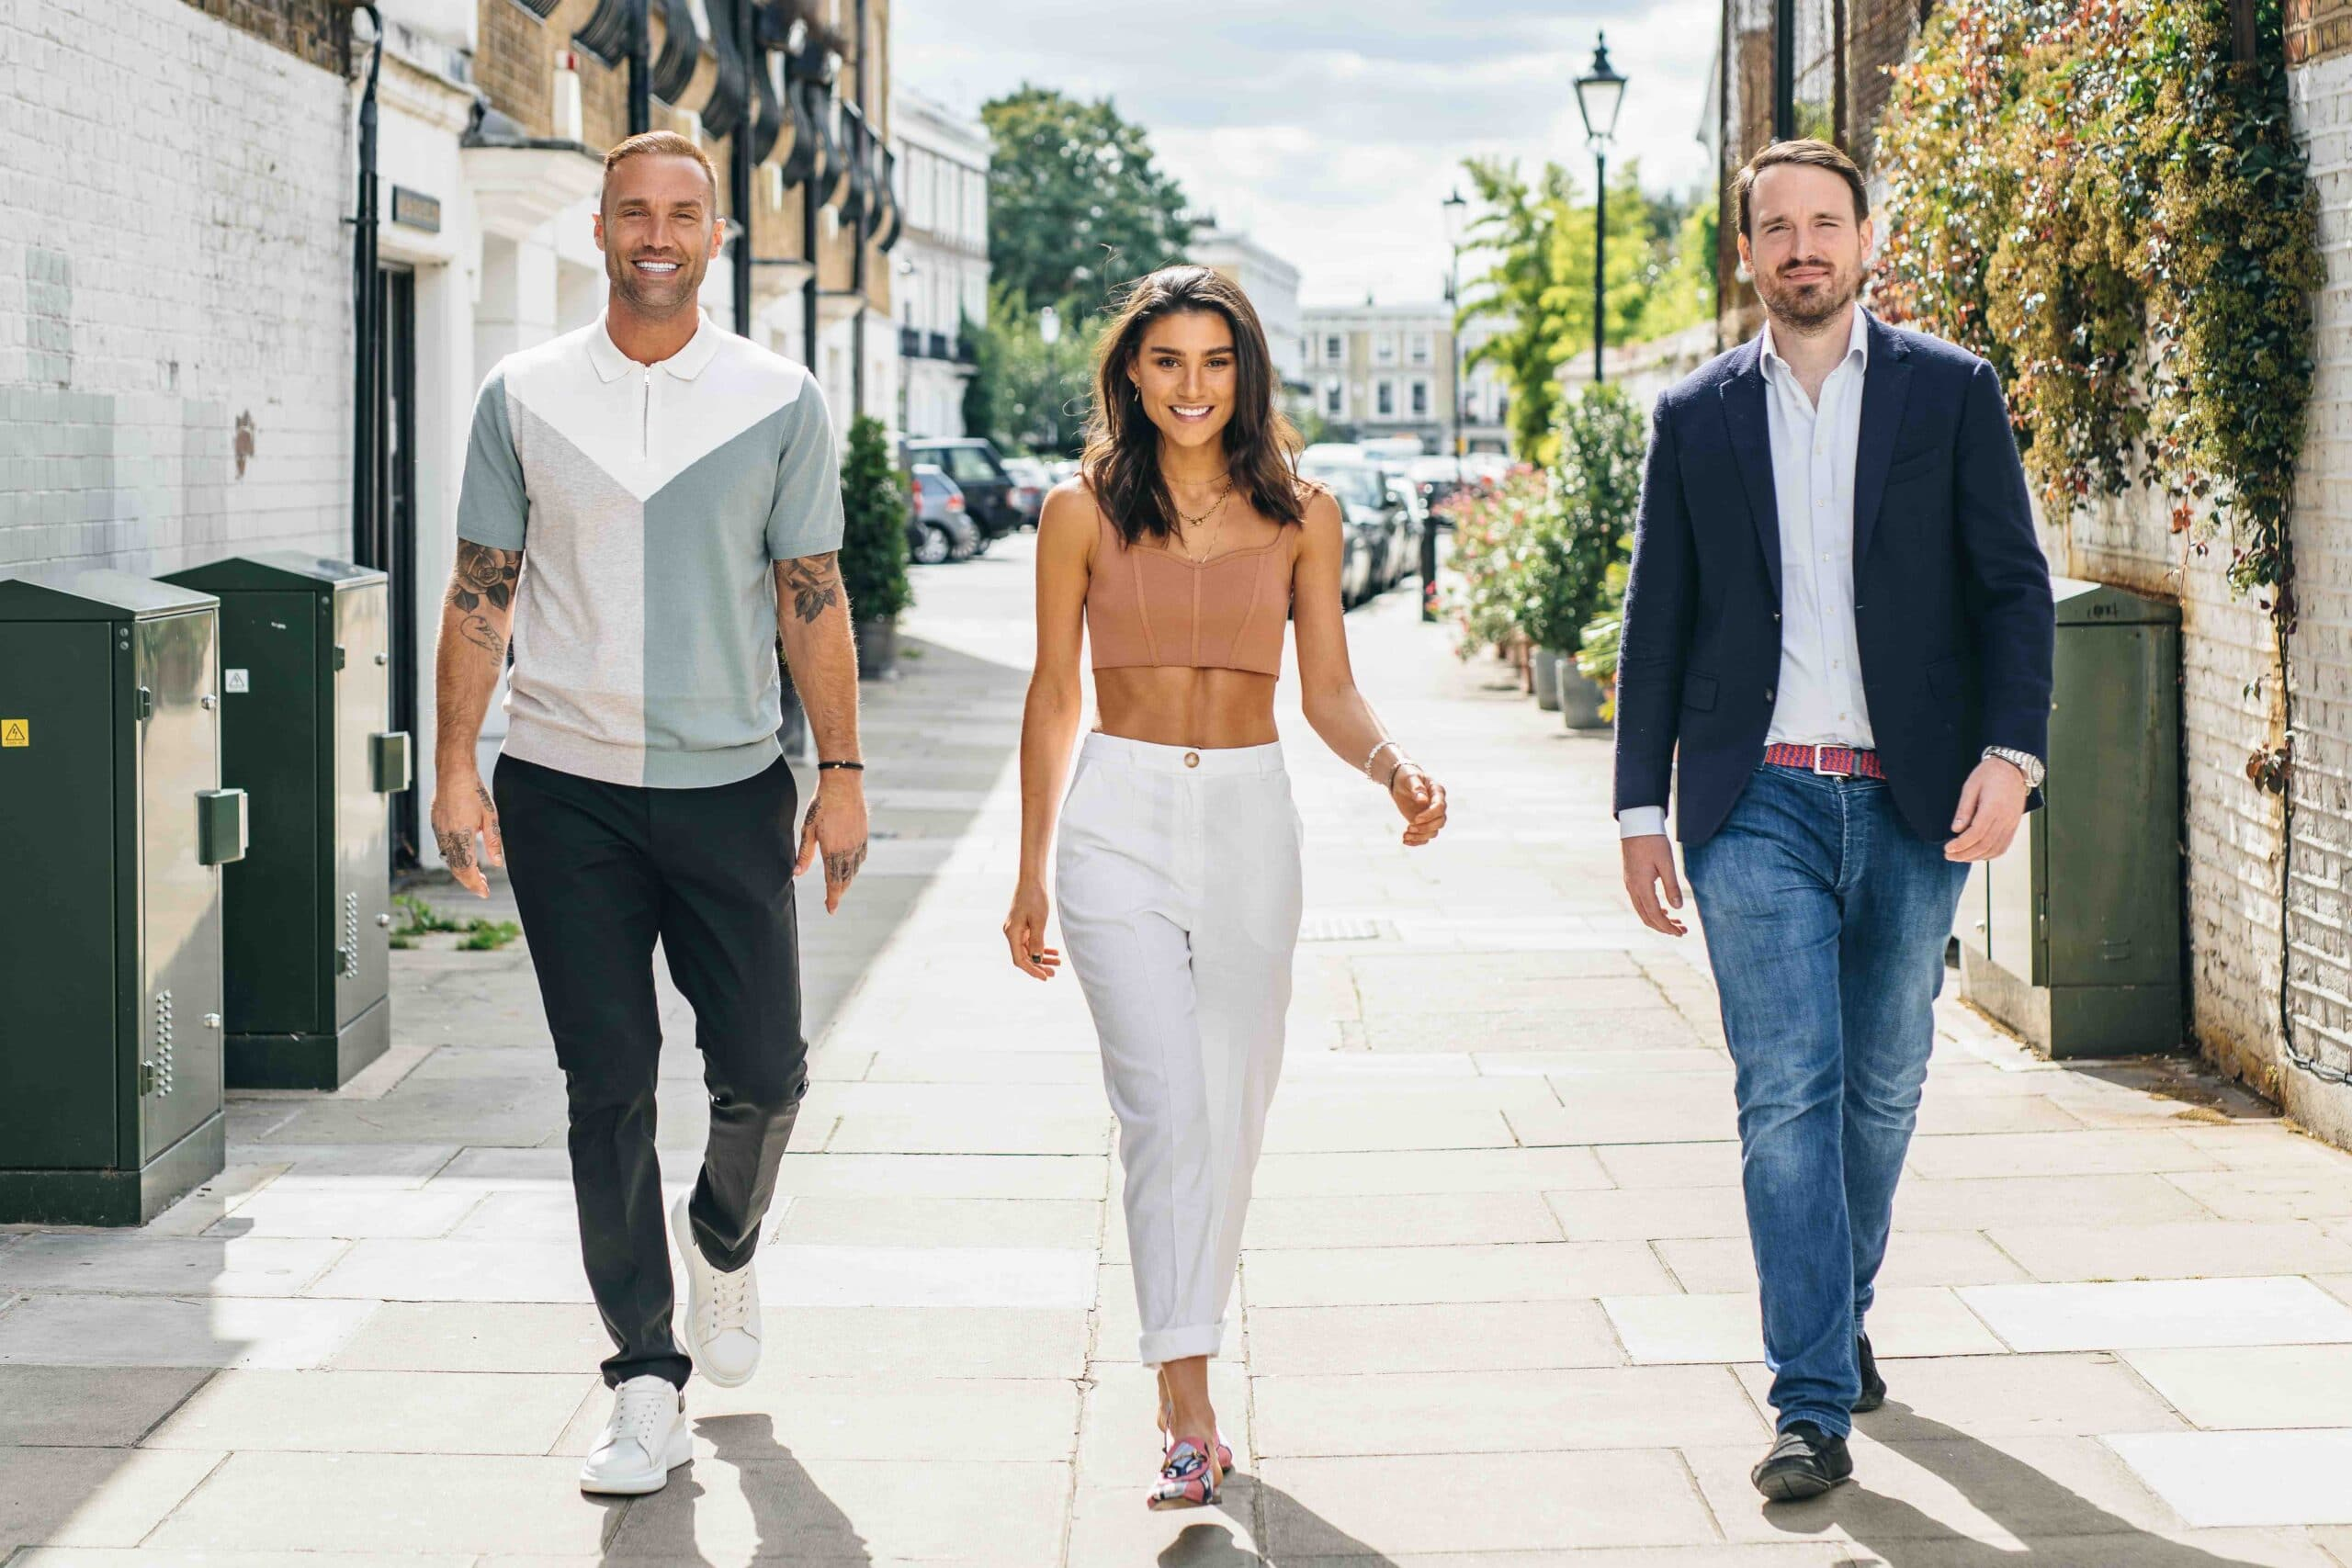 Calum Best Teams Up With Celebrity Chef And Model Georgia Salamat To Launch Poké Delivery Kitchen, 'Poke The Bear'